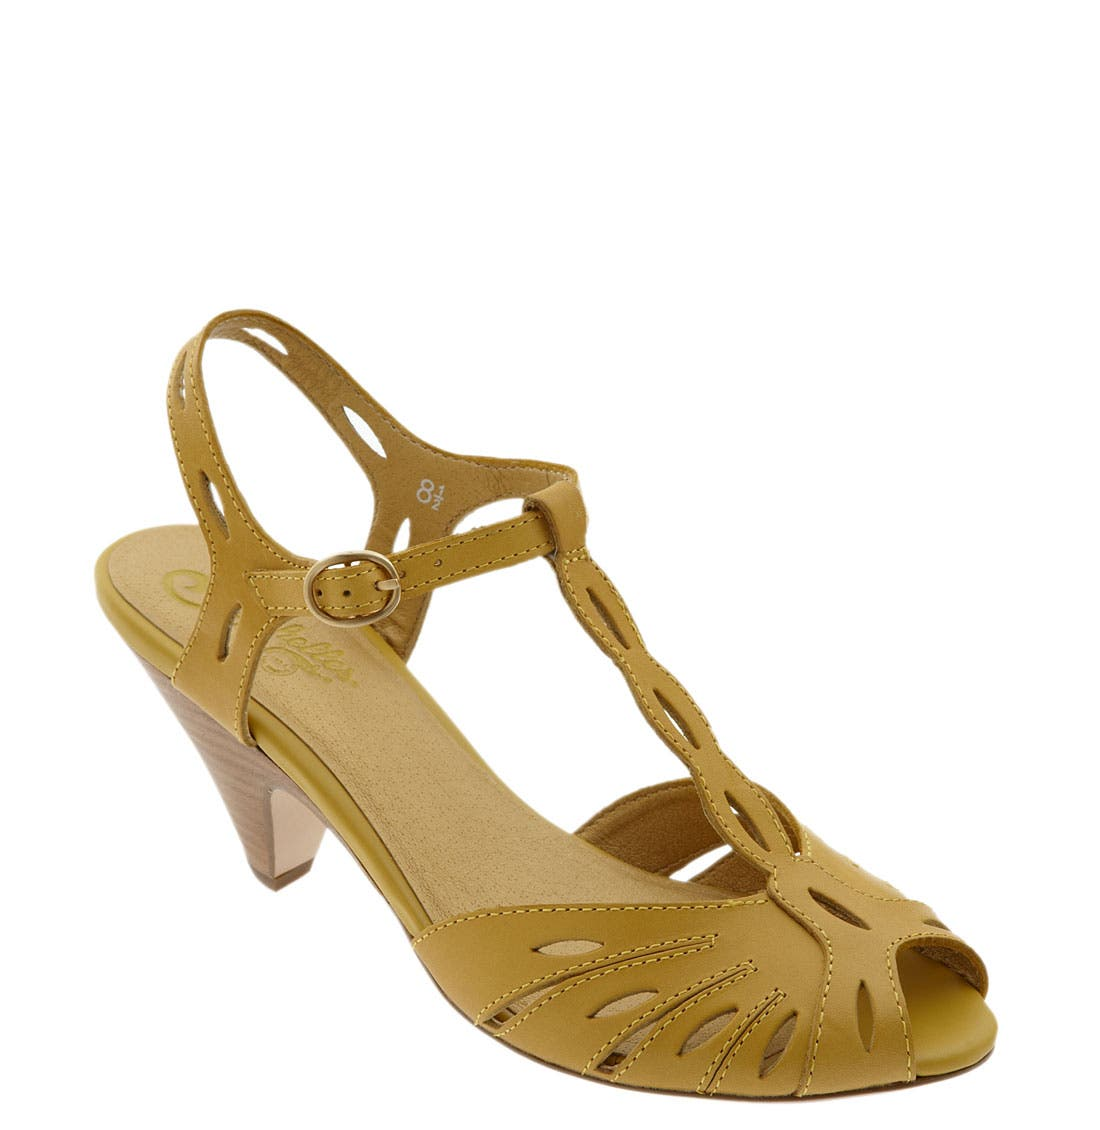 Main Image - Seychelles 'Trip the Light' T-Strap Sandal